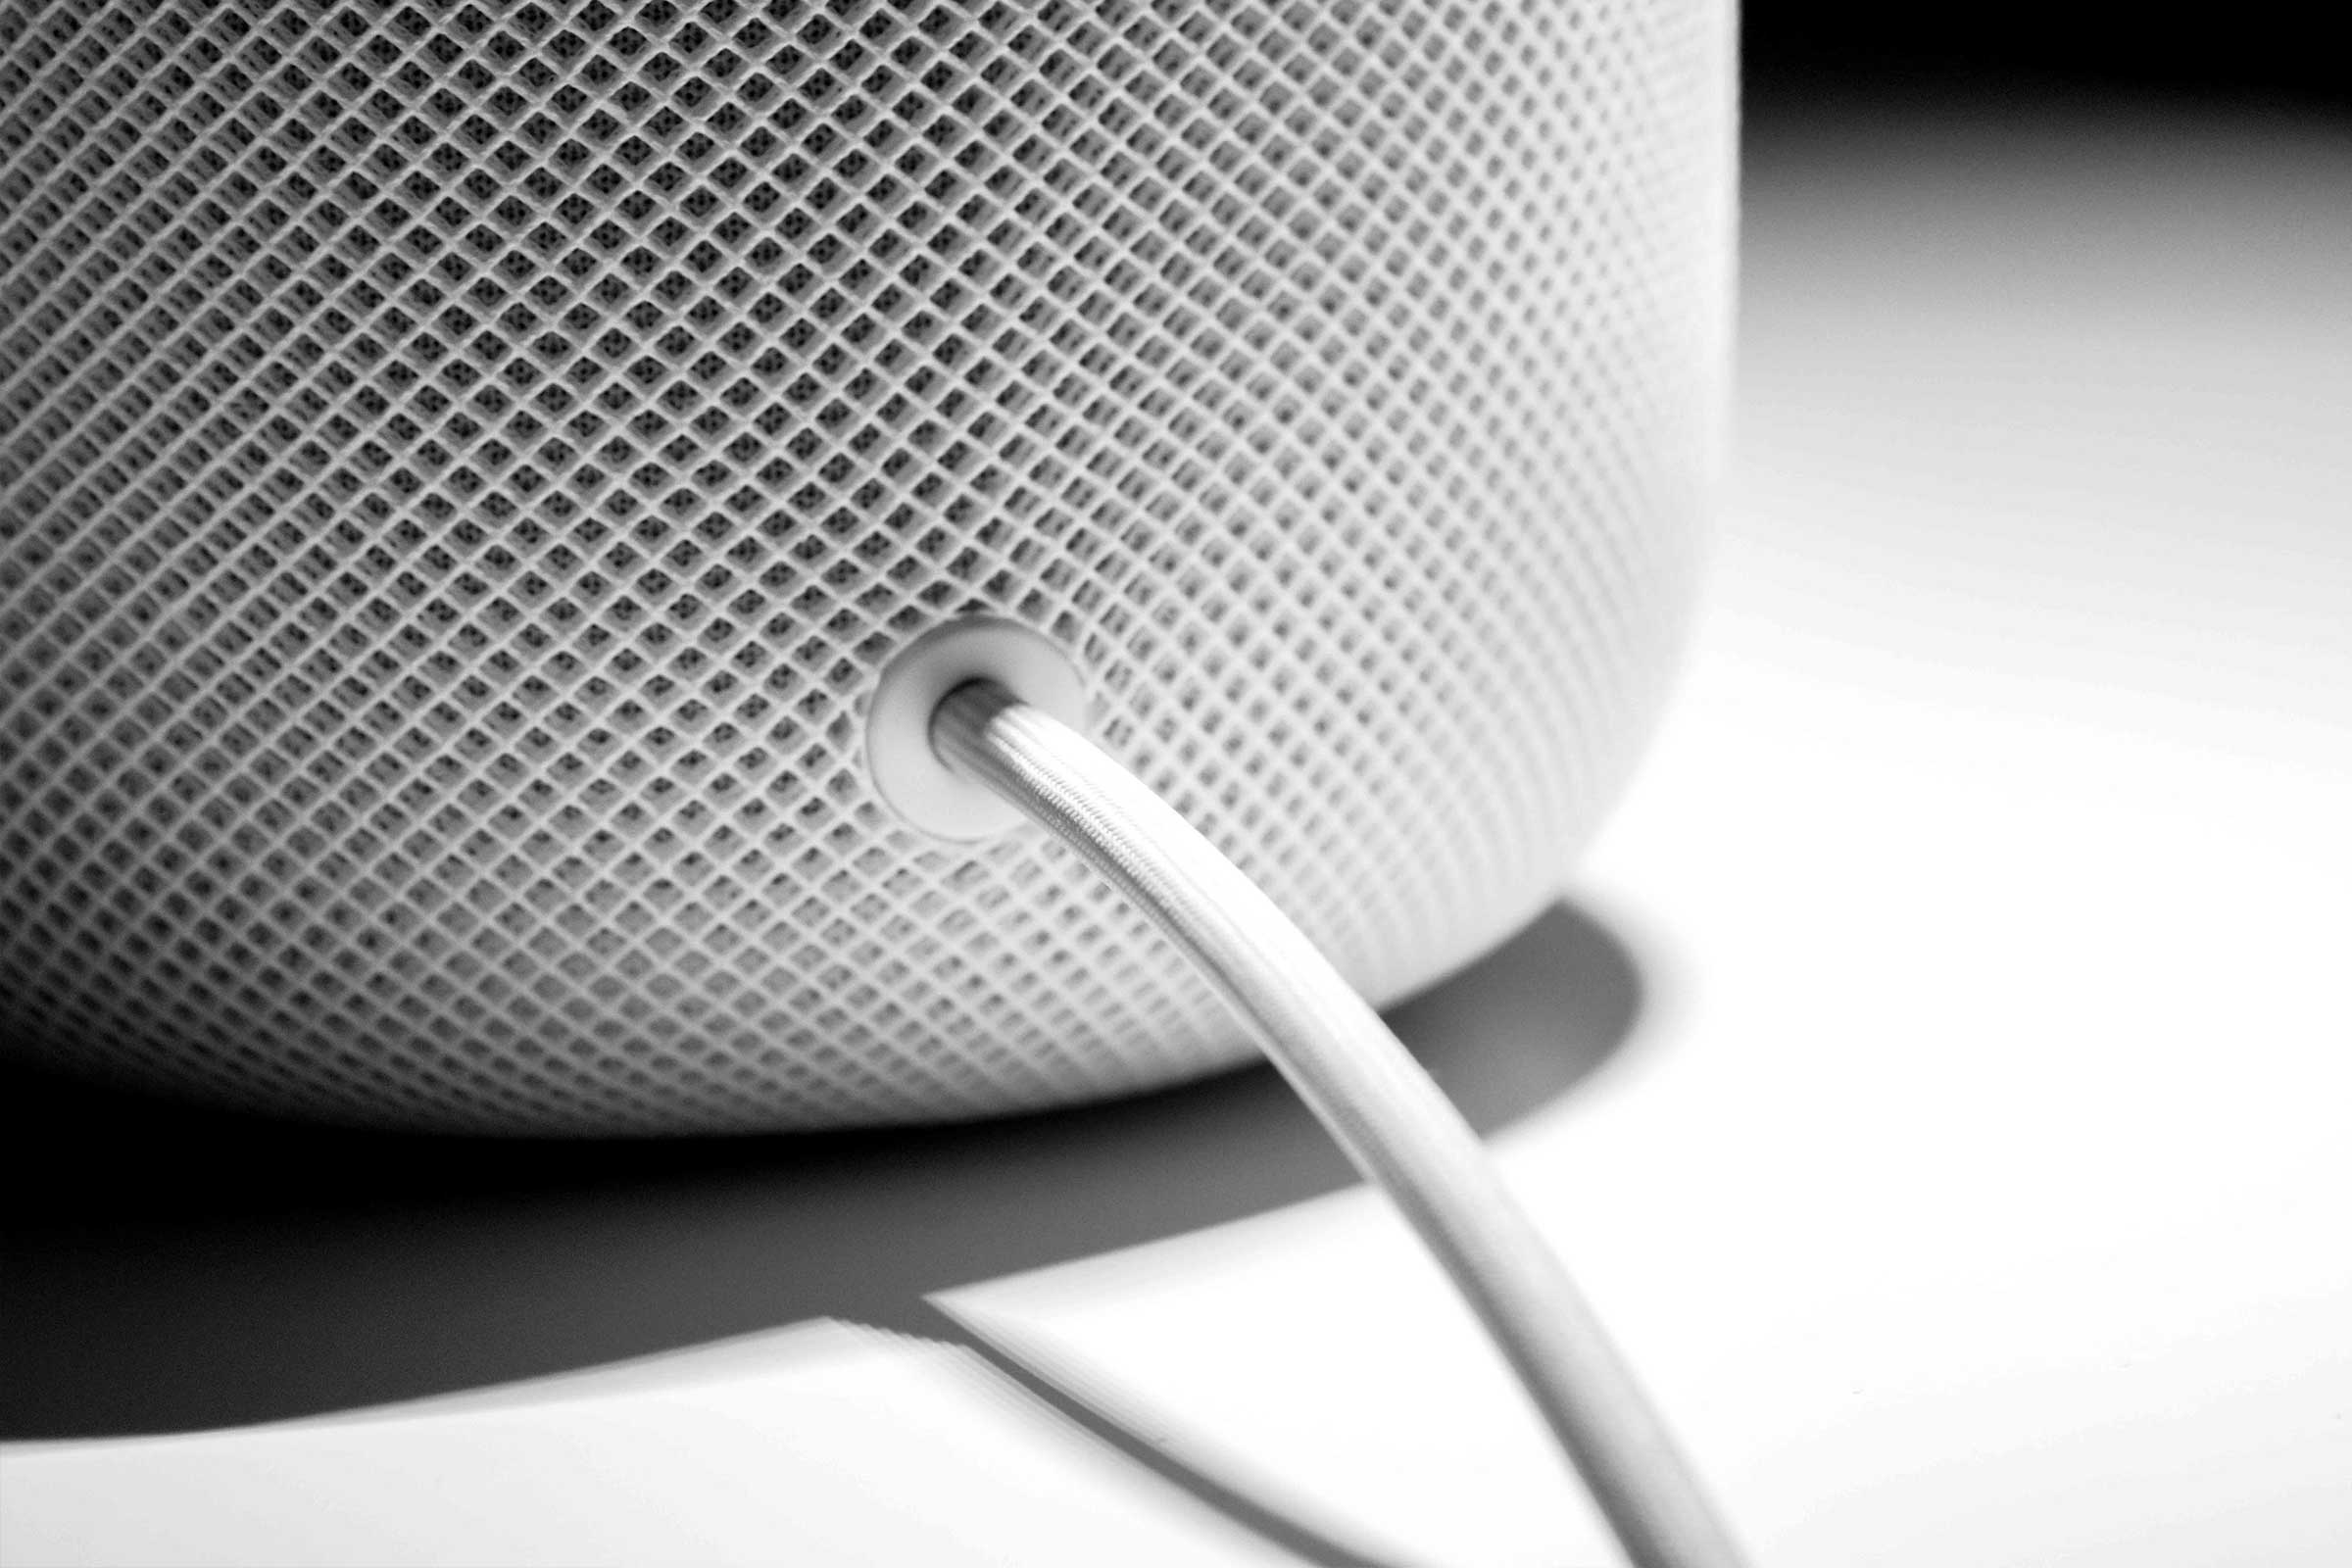 Apple HomePod Review | Cord Detail